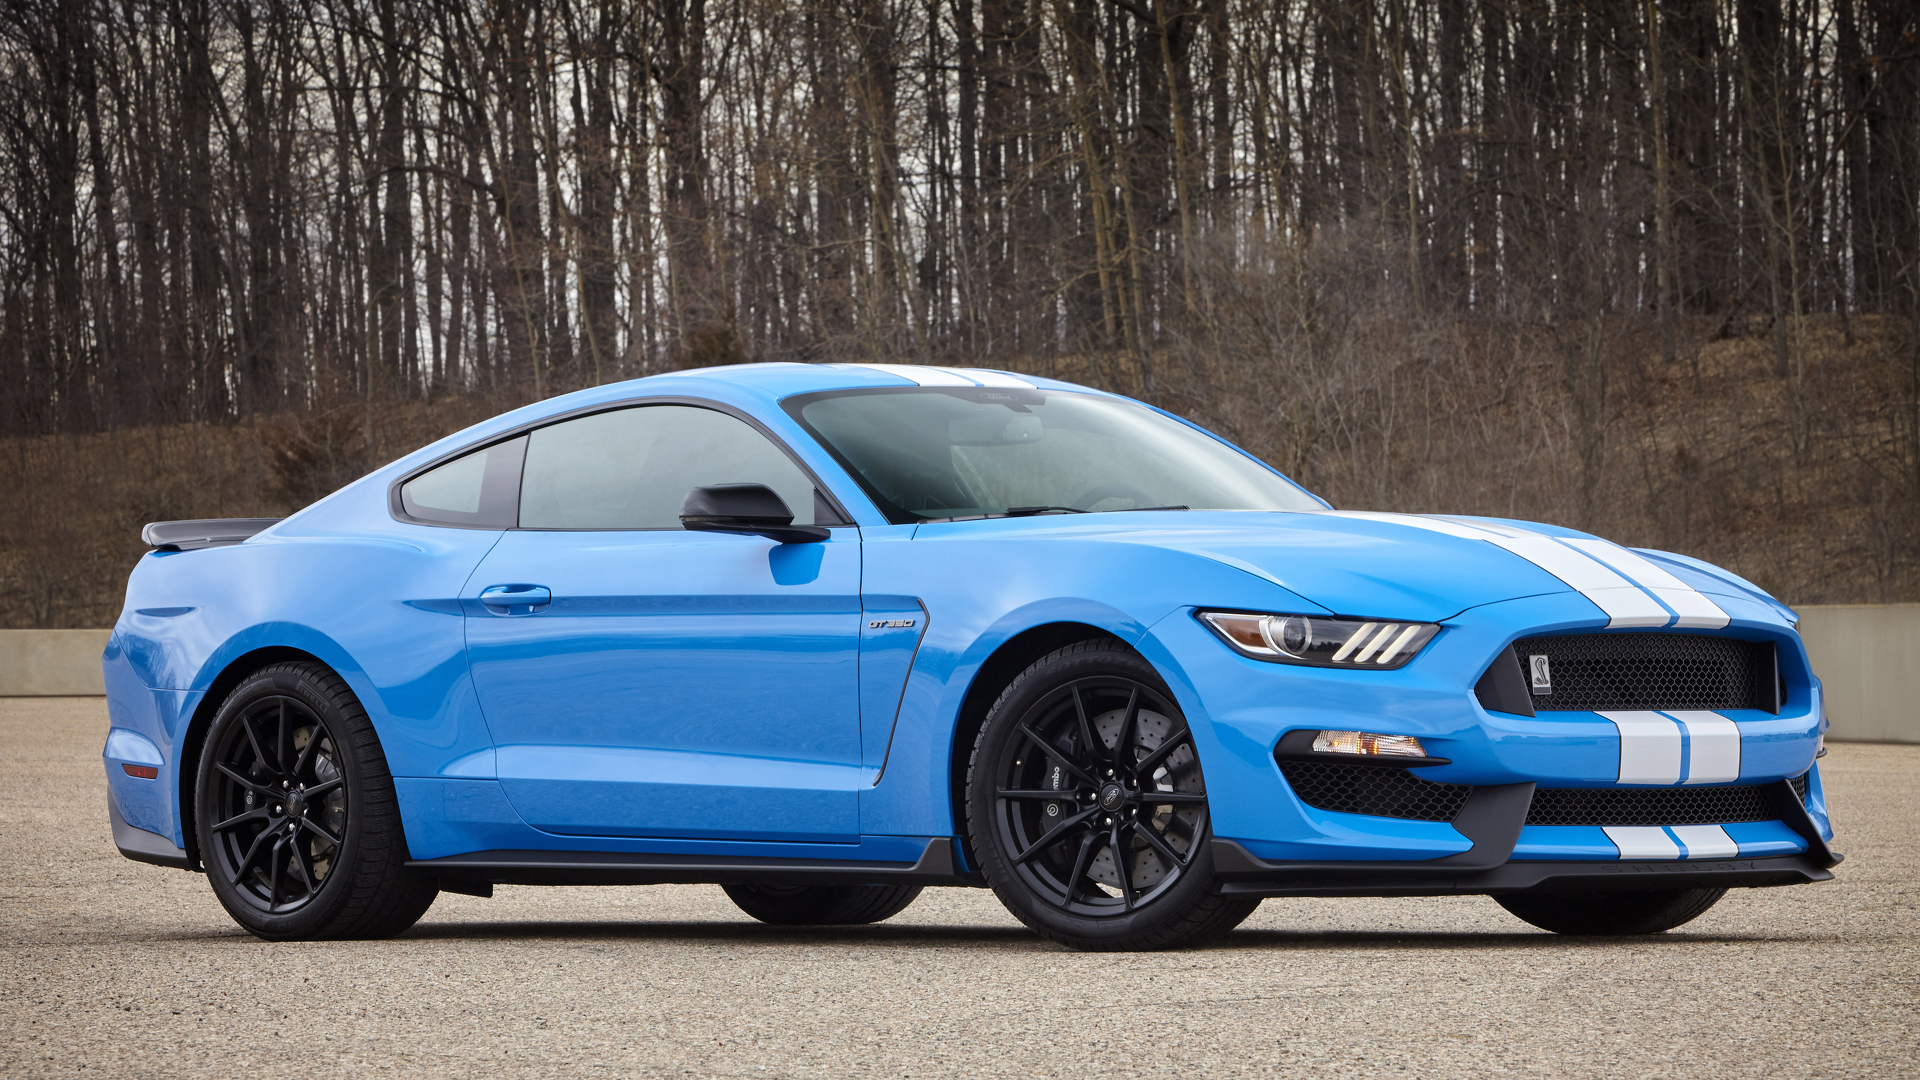 Ford shelby gt350 news and reviews motor1 com